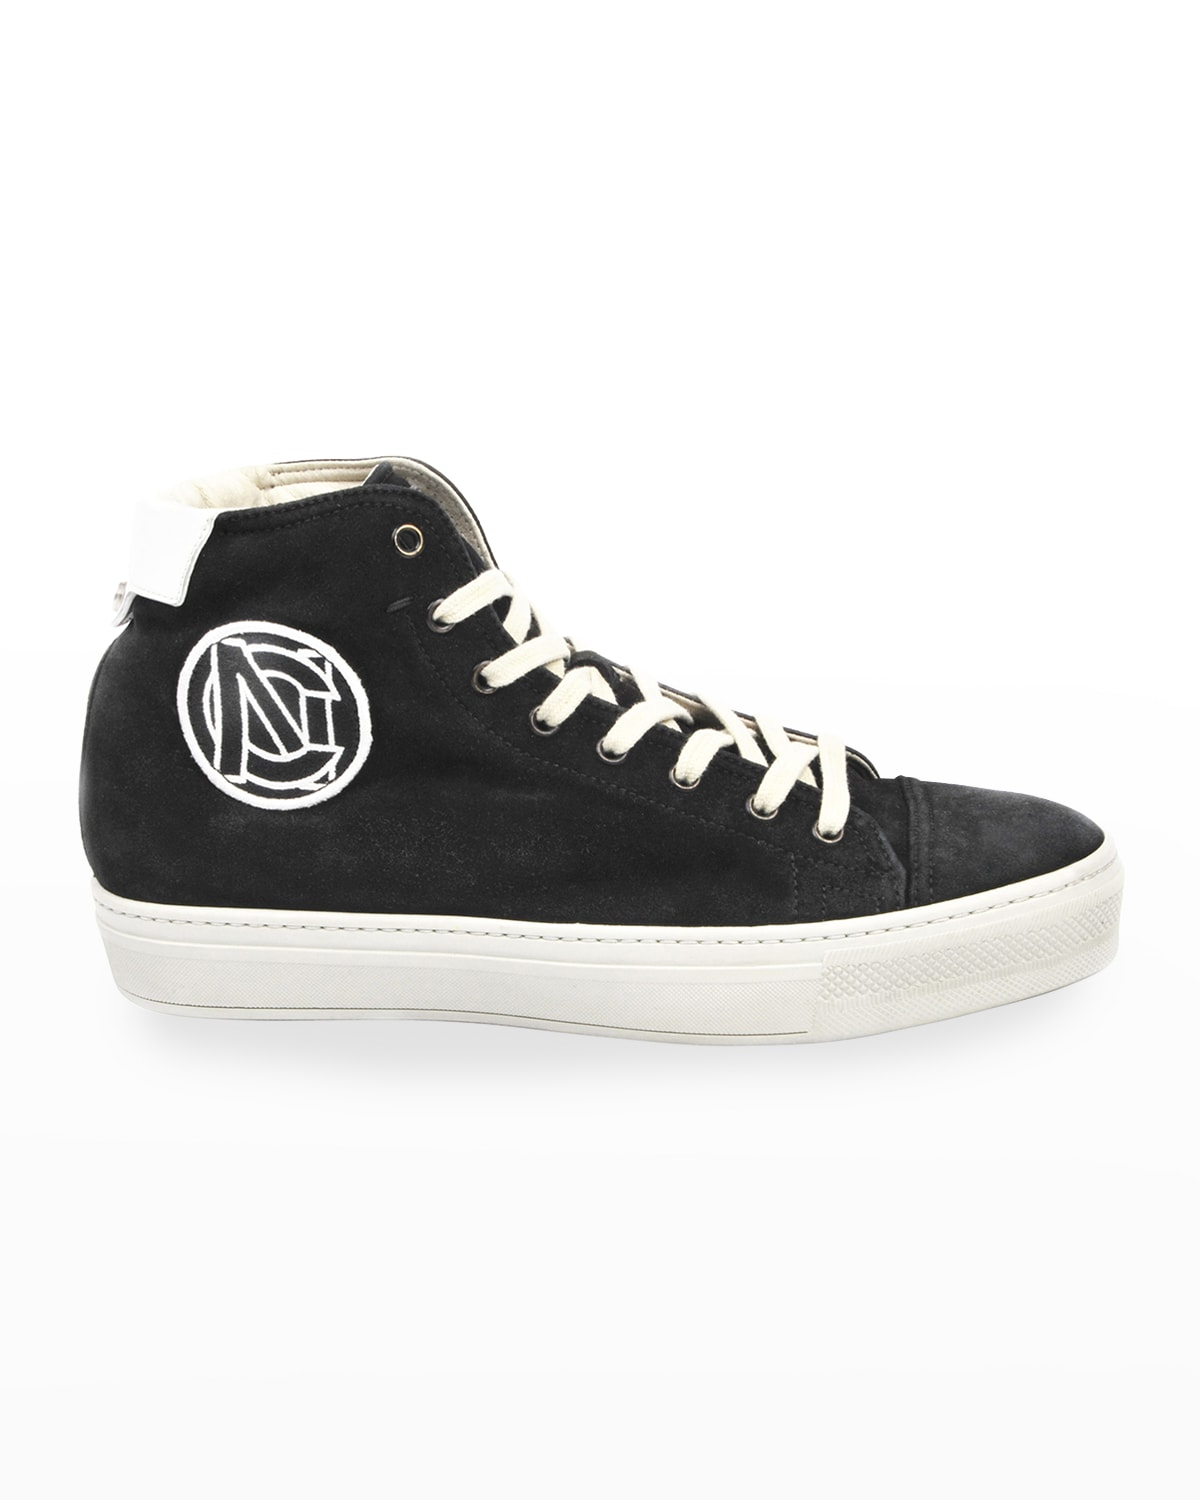 Men's High-Top Suede Sneakers w/ Embroidered Logo